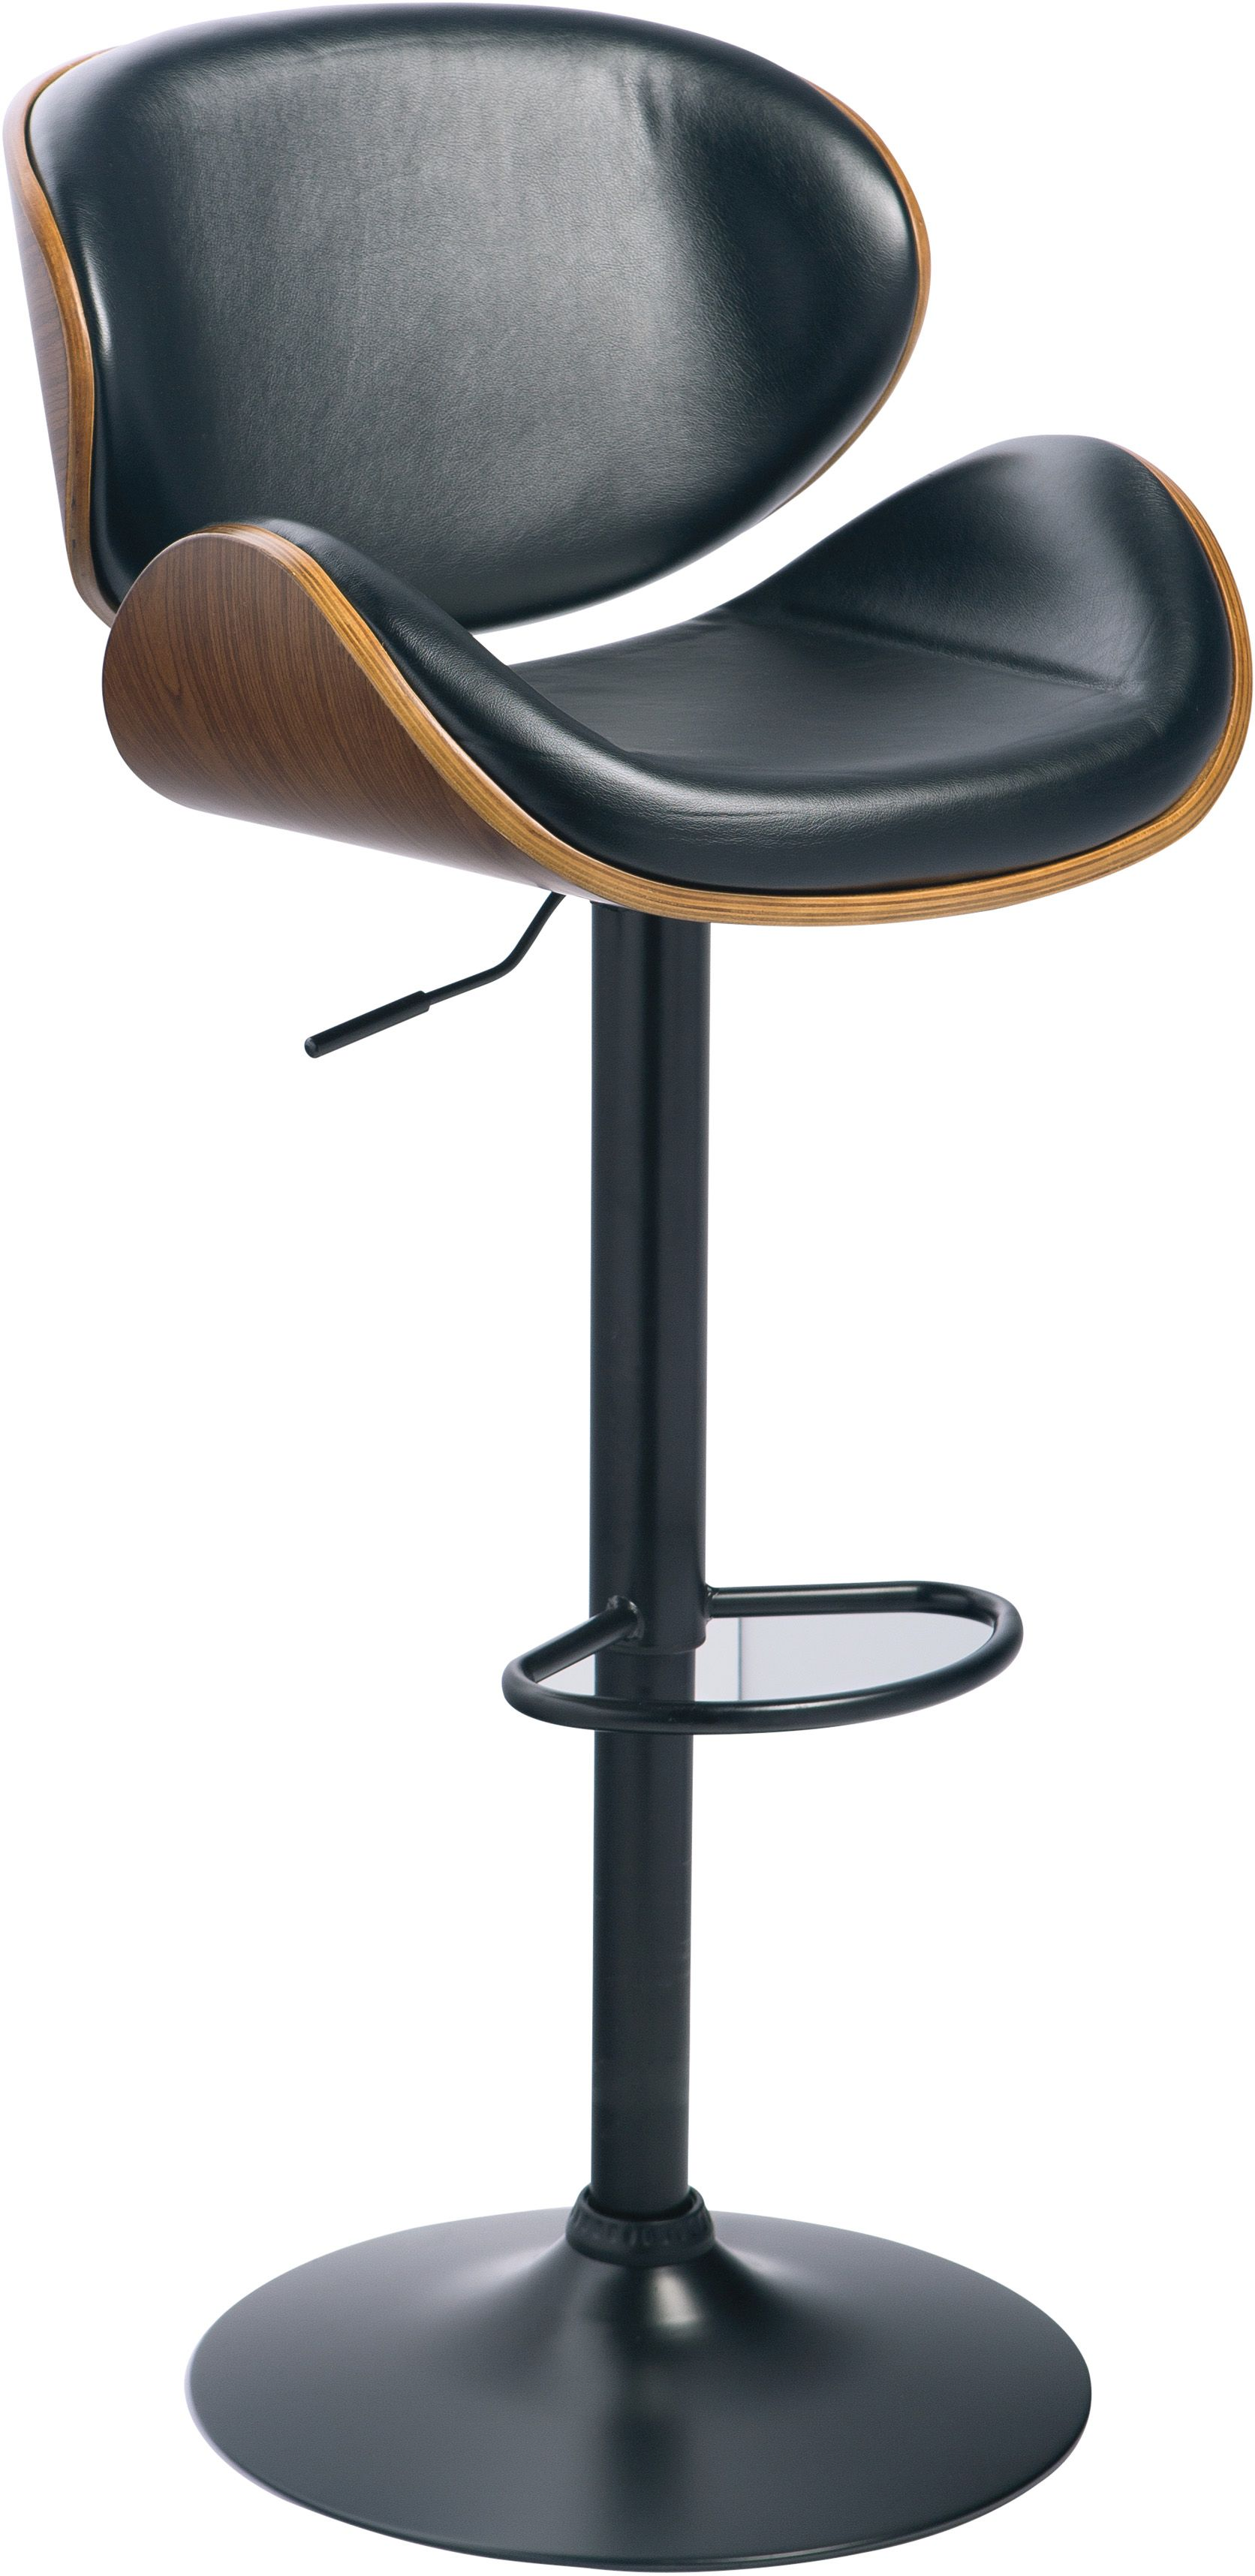 Pleasant Stools Coles Appliance Home Furnishings Alphanode Cool Chair Designs And Ideas Alphanodeonline